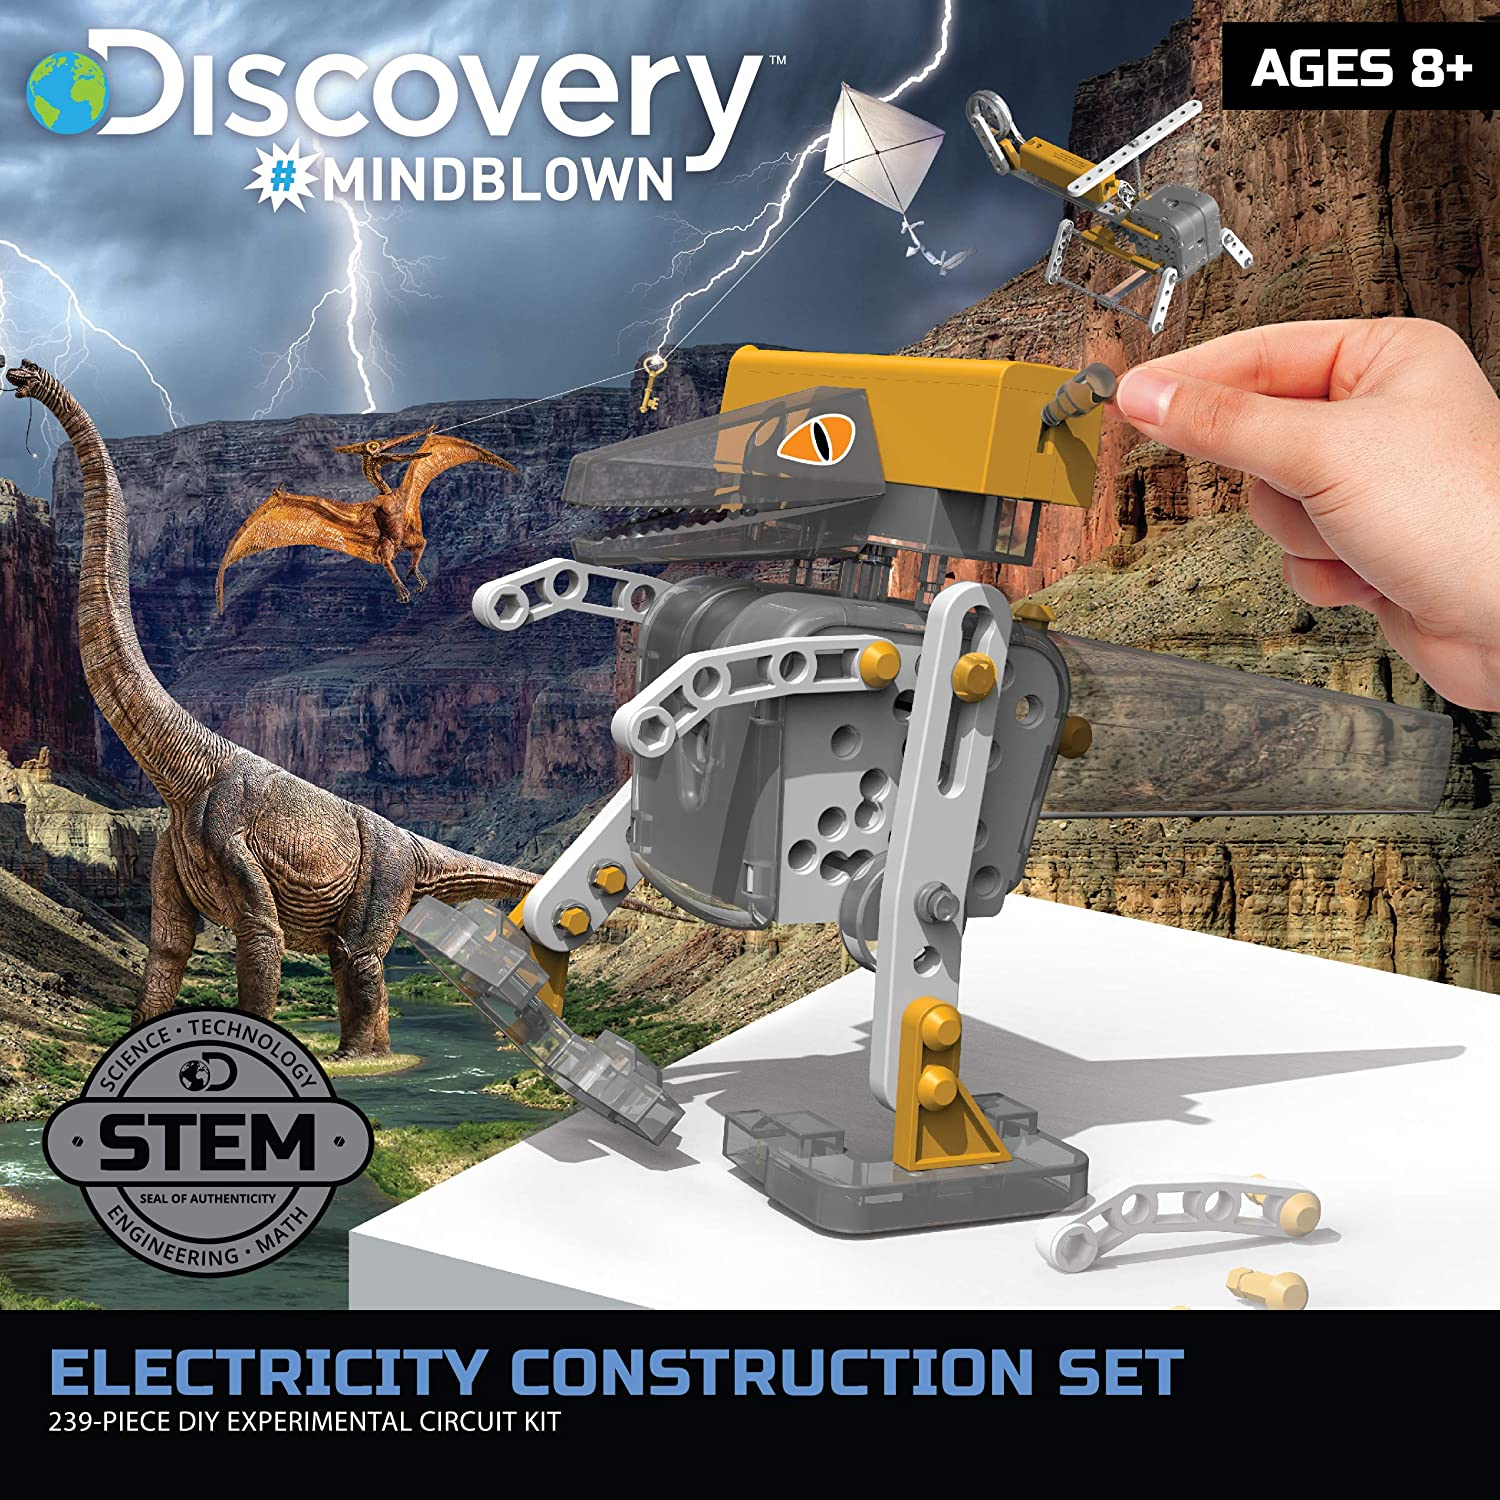 Girls 239 Total Pieces Discovery #MINDBLOWN Electricity Construction Set Kids STEM Learning for Boys and Teens 10 Robotic Build Kits /& 7 Electronic Circuit Experiments